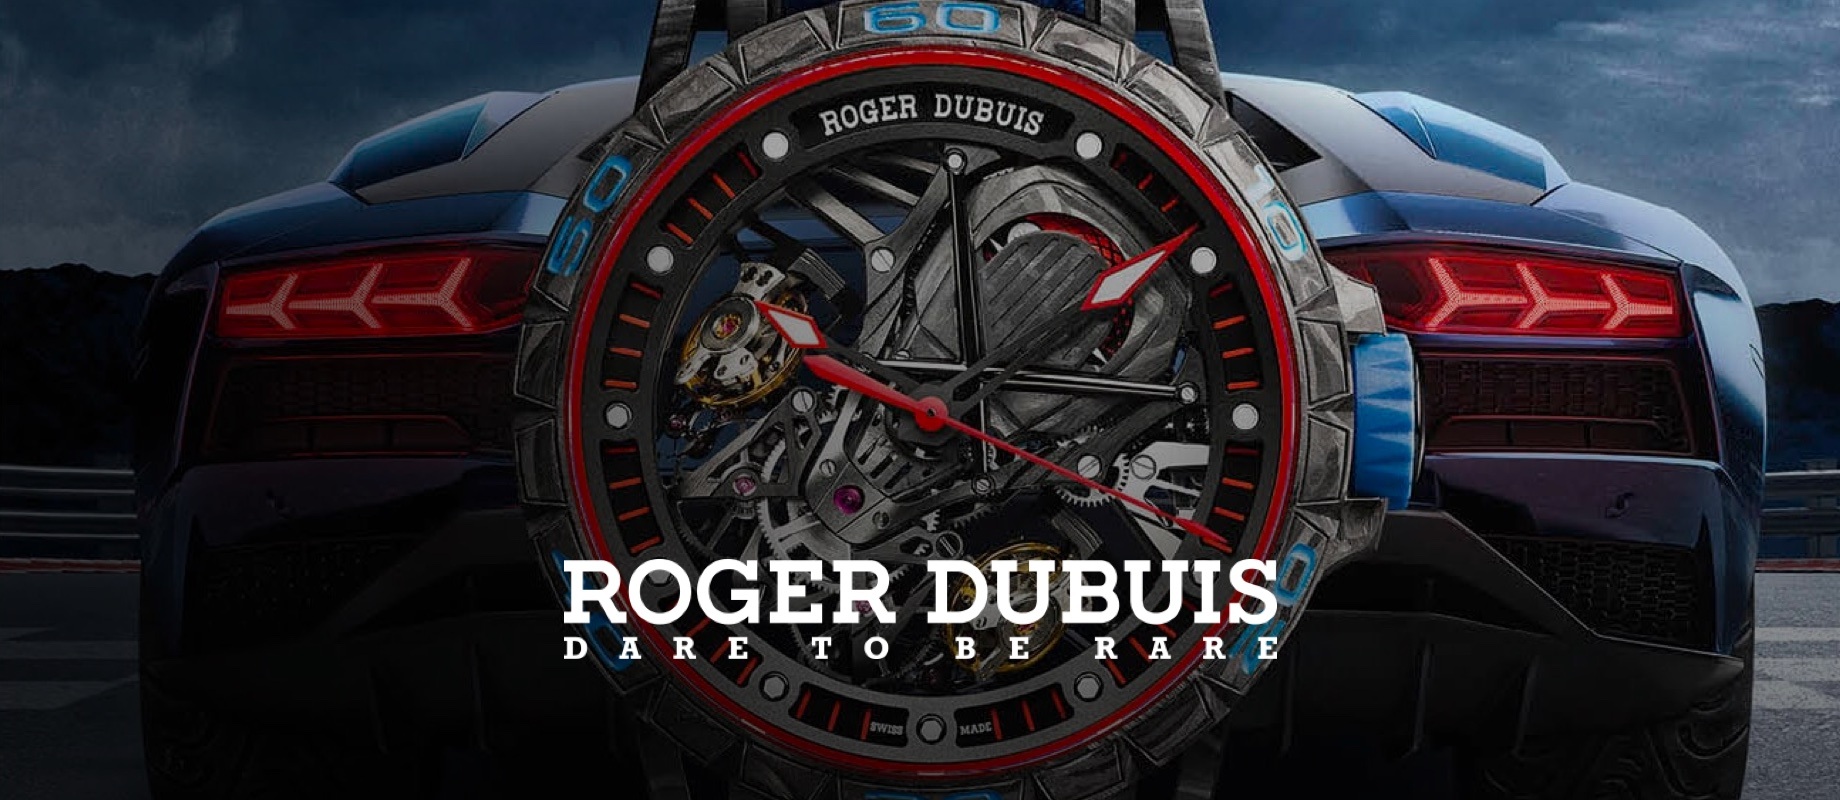 ROOGER DUBUIS DARE TO BE RARE